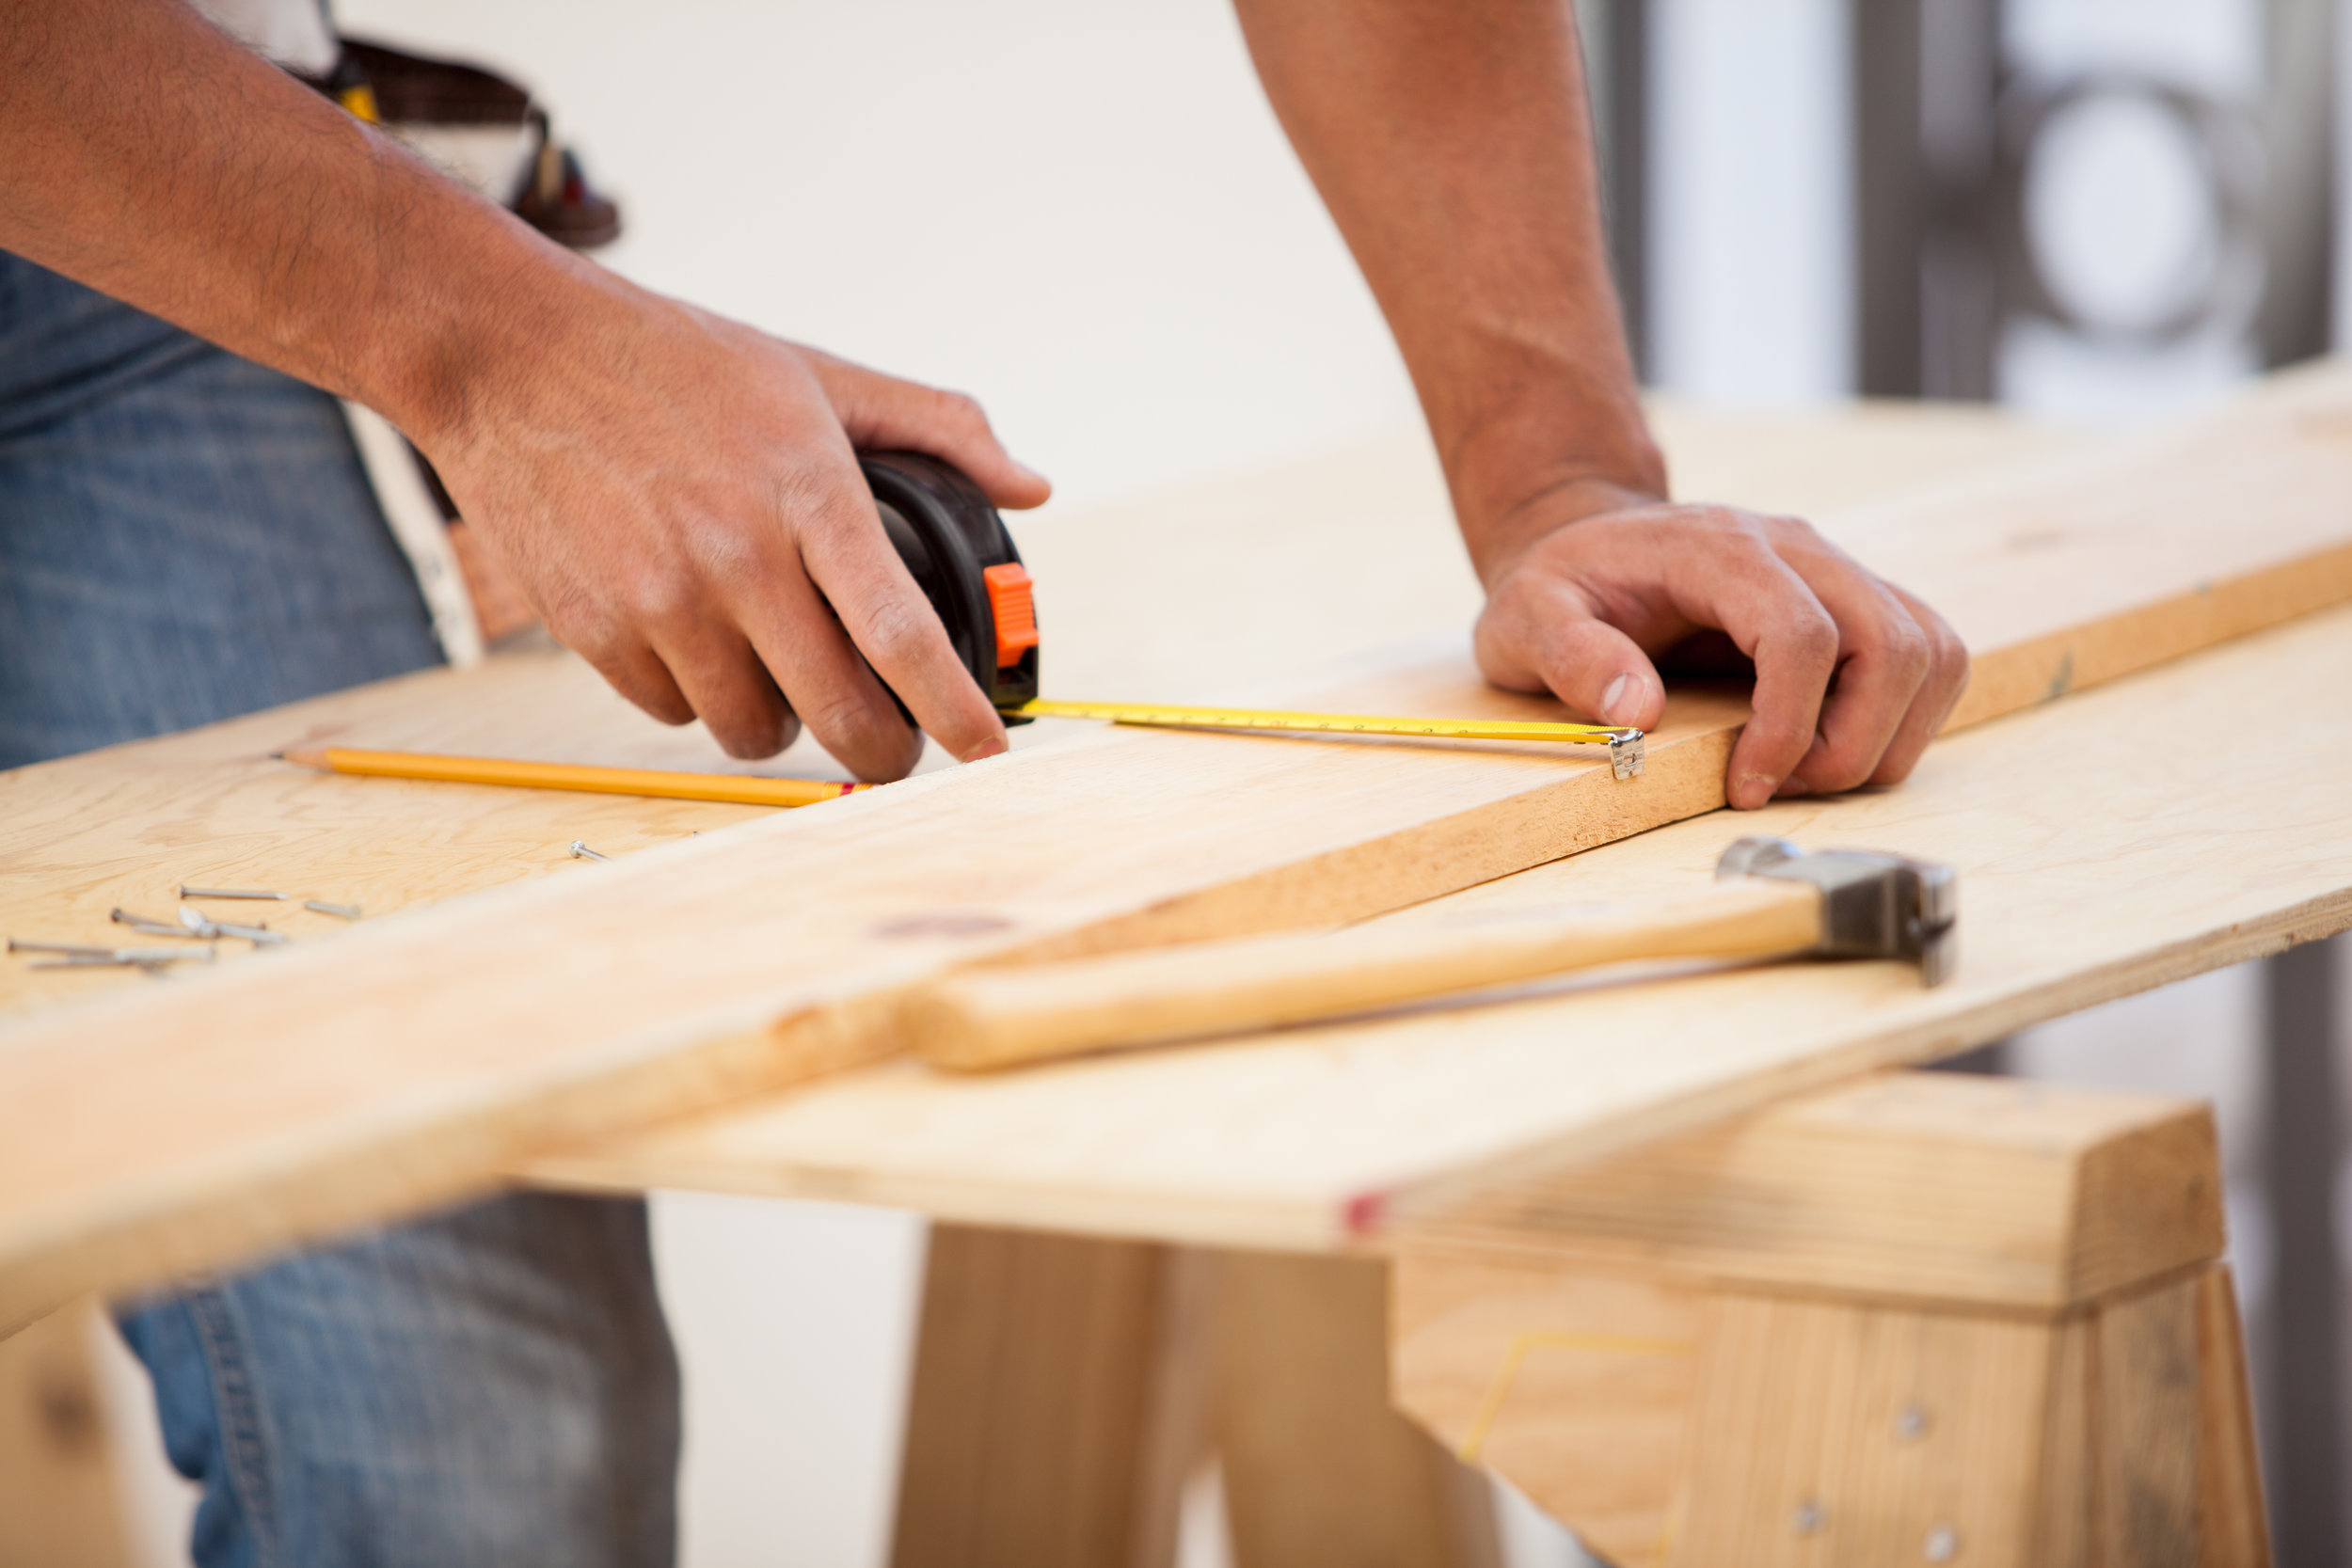 emshoreconstruction_brooklyn_staten_island_contractor_our_services.jpg